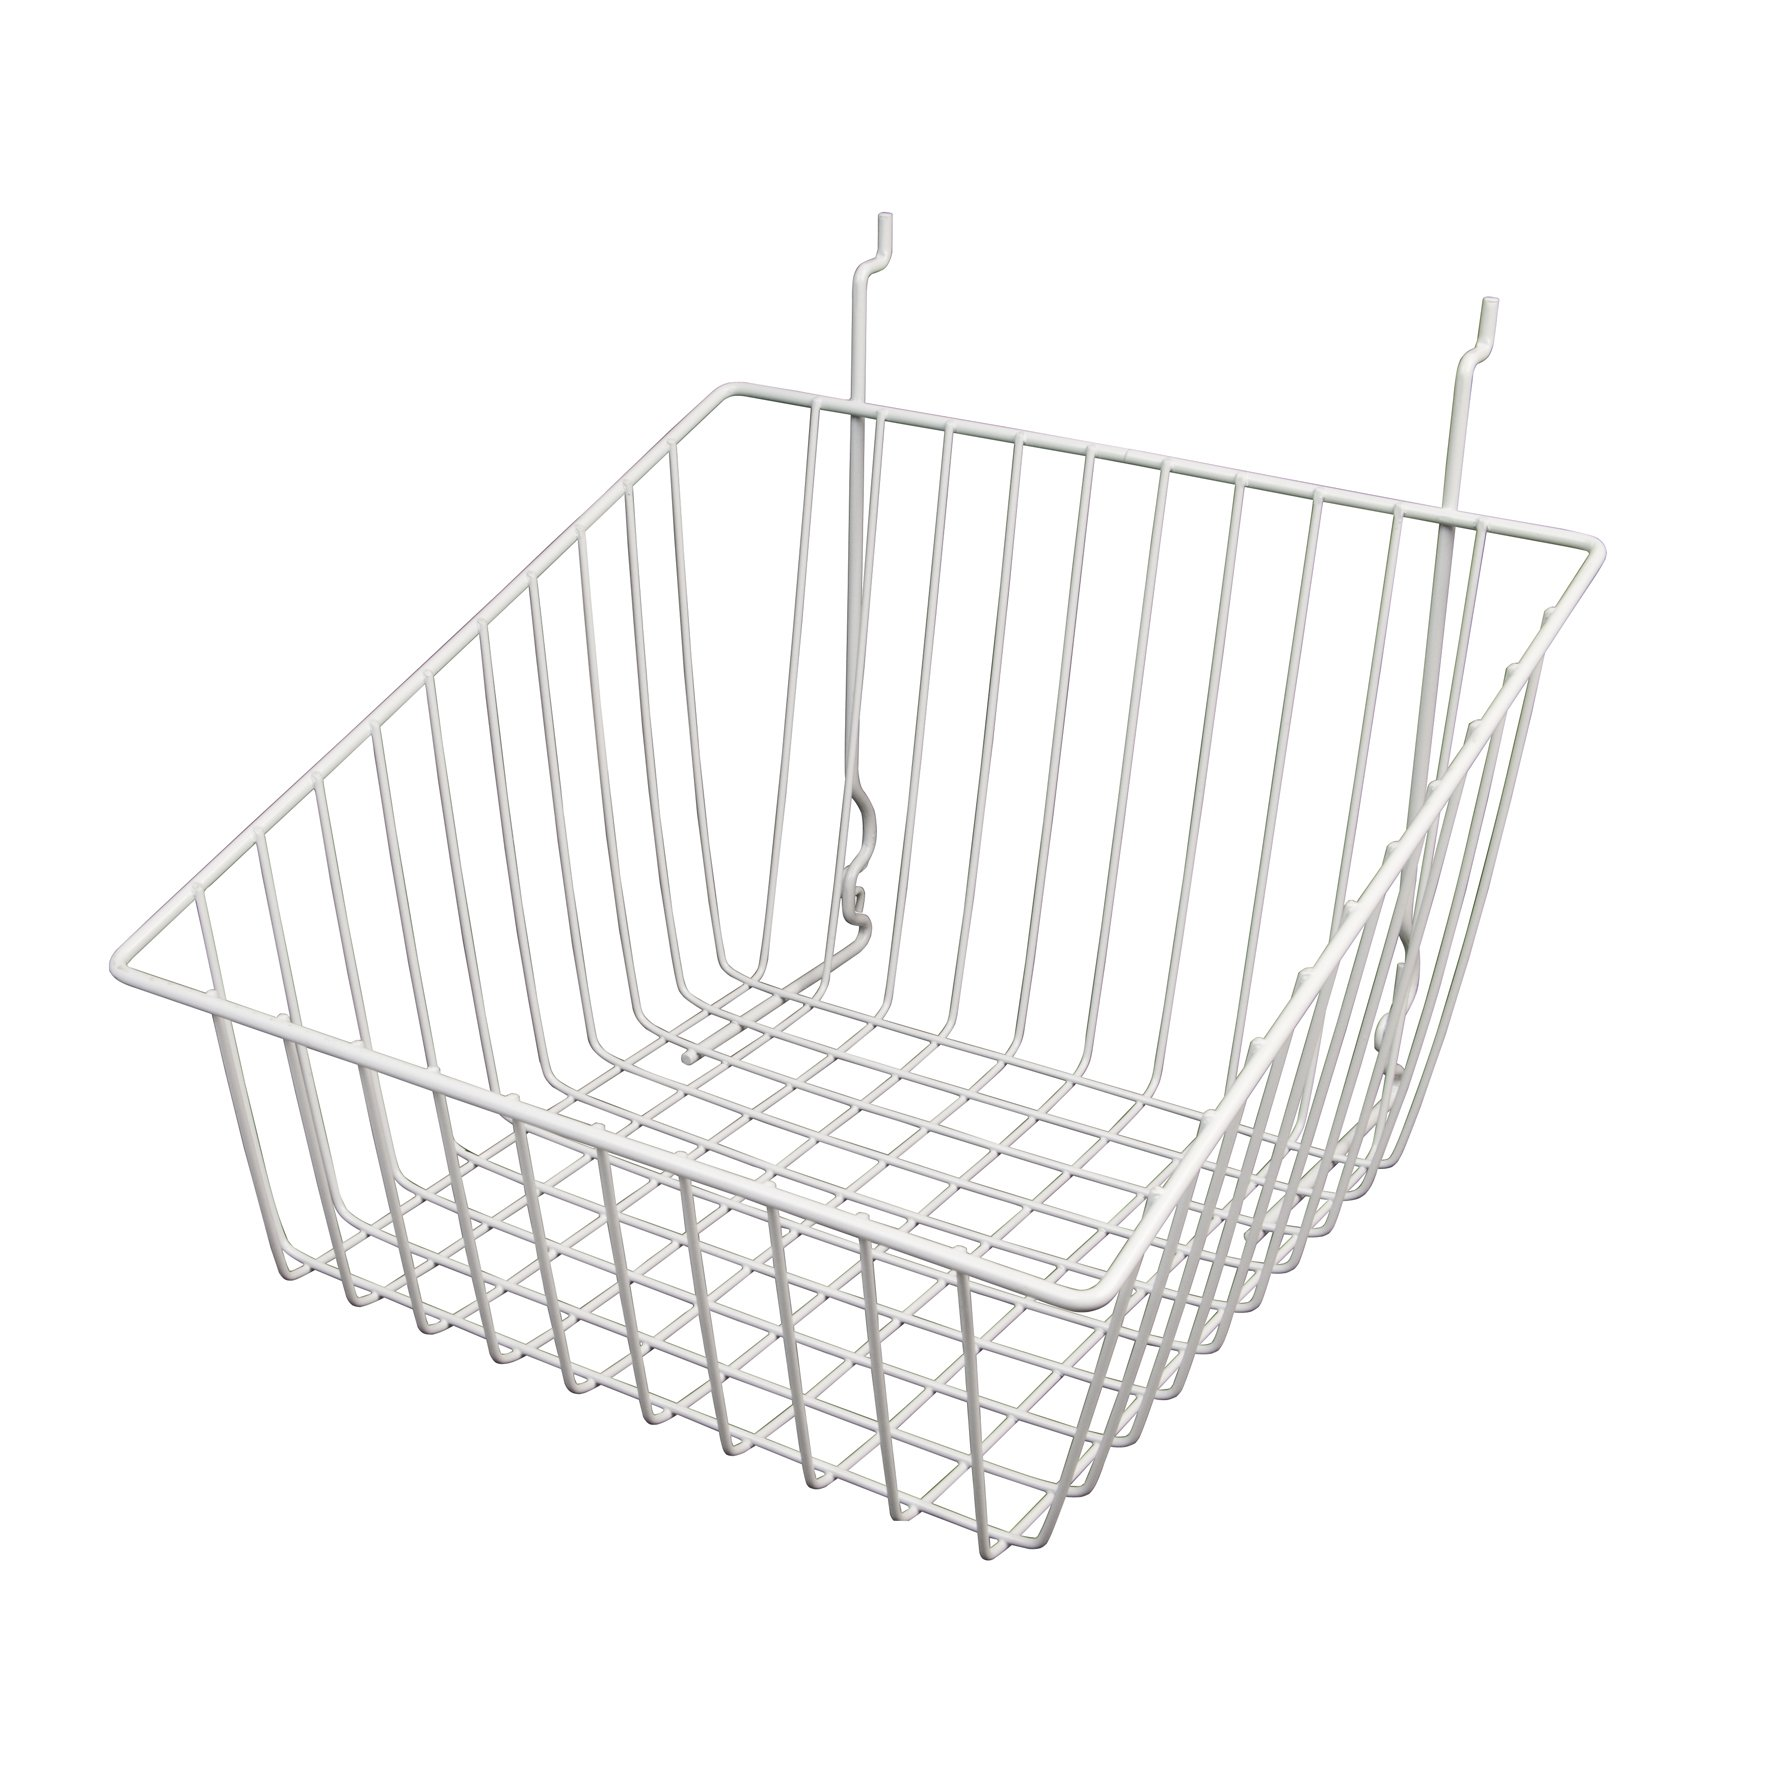 Wire Basket for Slatwall, Gridwall or Pegboard -Box of 6 - 12''W x 12''D x 8''H Sloped Front Basket